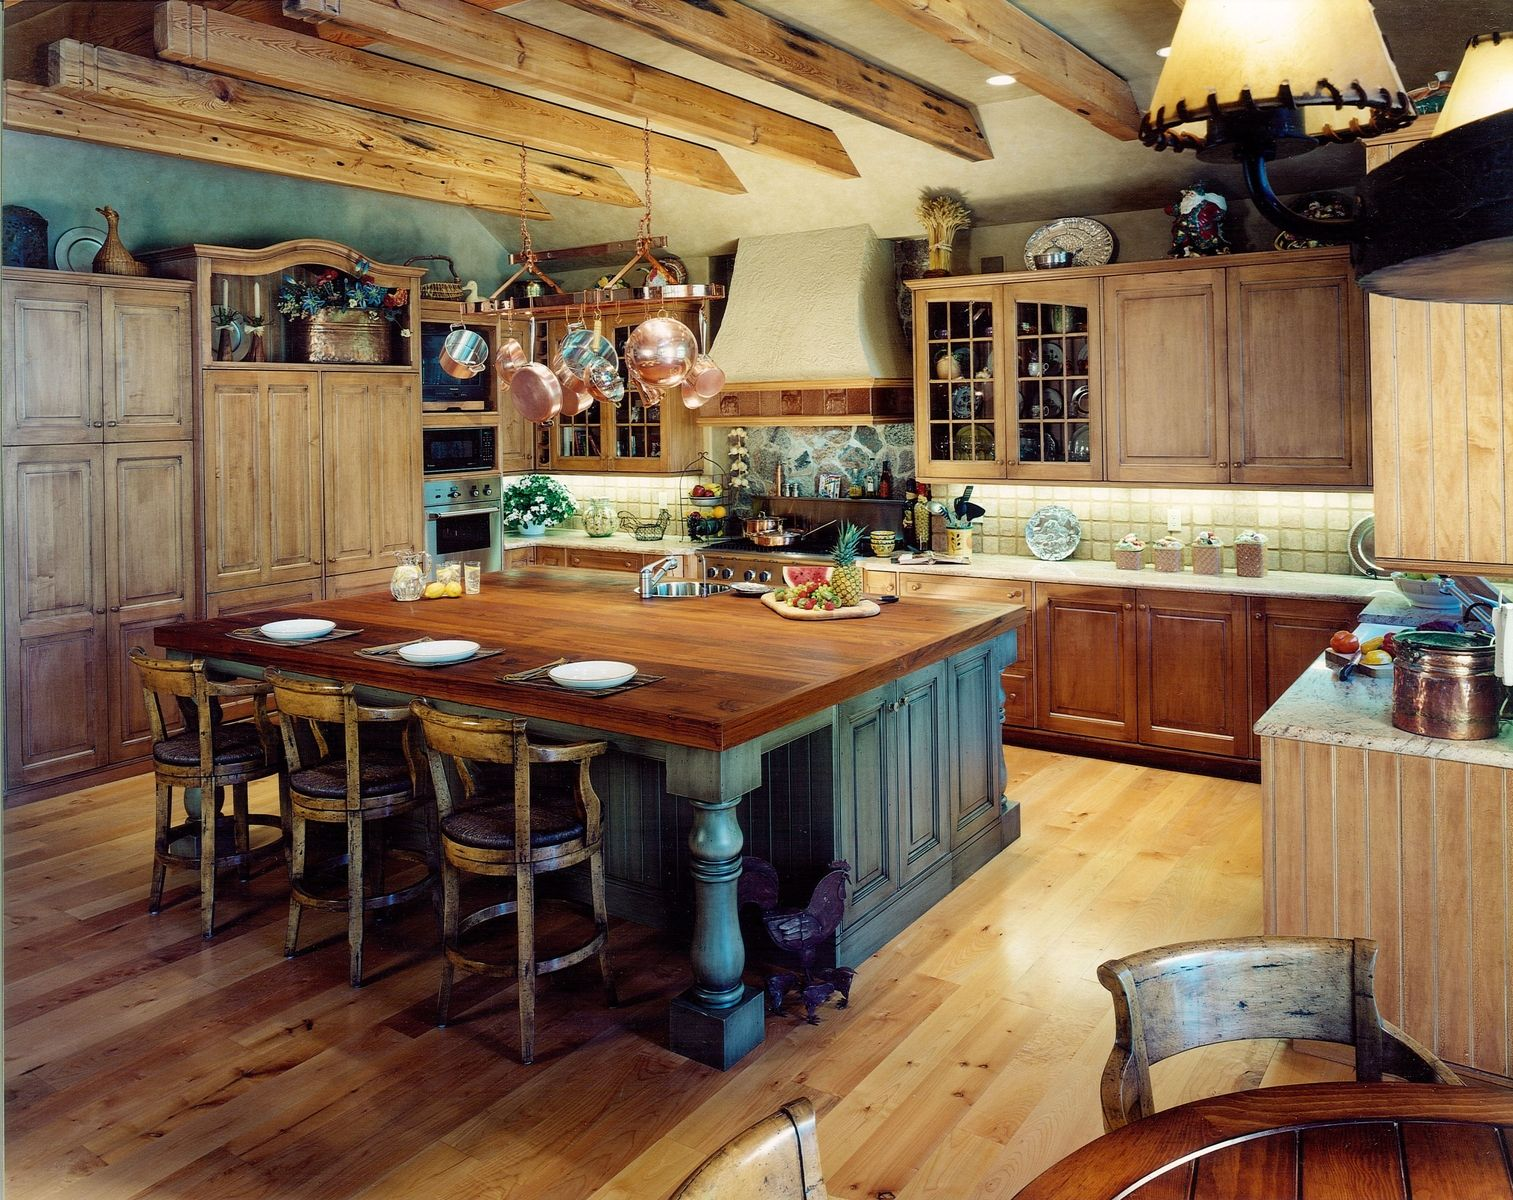 Rustic Kitchen Designs With Islands 30 Country Kitchens Blending Traditions And Modern Ideas 280